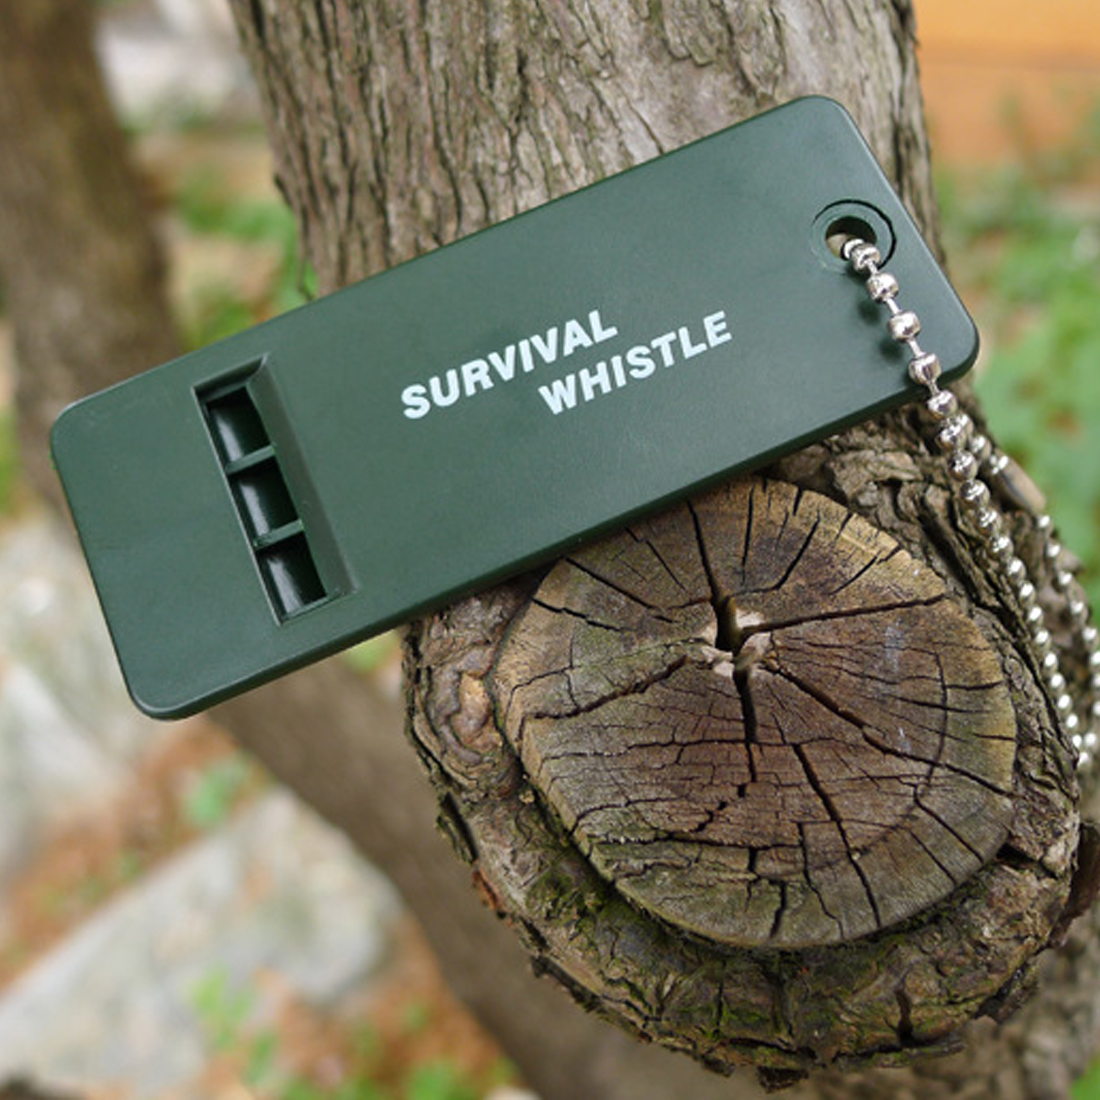 Survival Whistle First Aid Kits Outdoor Emergency Signal Rescue Camping Hiking outdoor sport practical silbato new safurance outdoor emergency blanket tent sleeping bag survival rescue camping shelter hike emergency kits